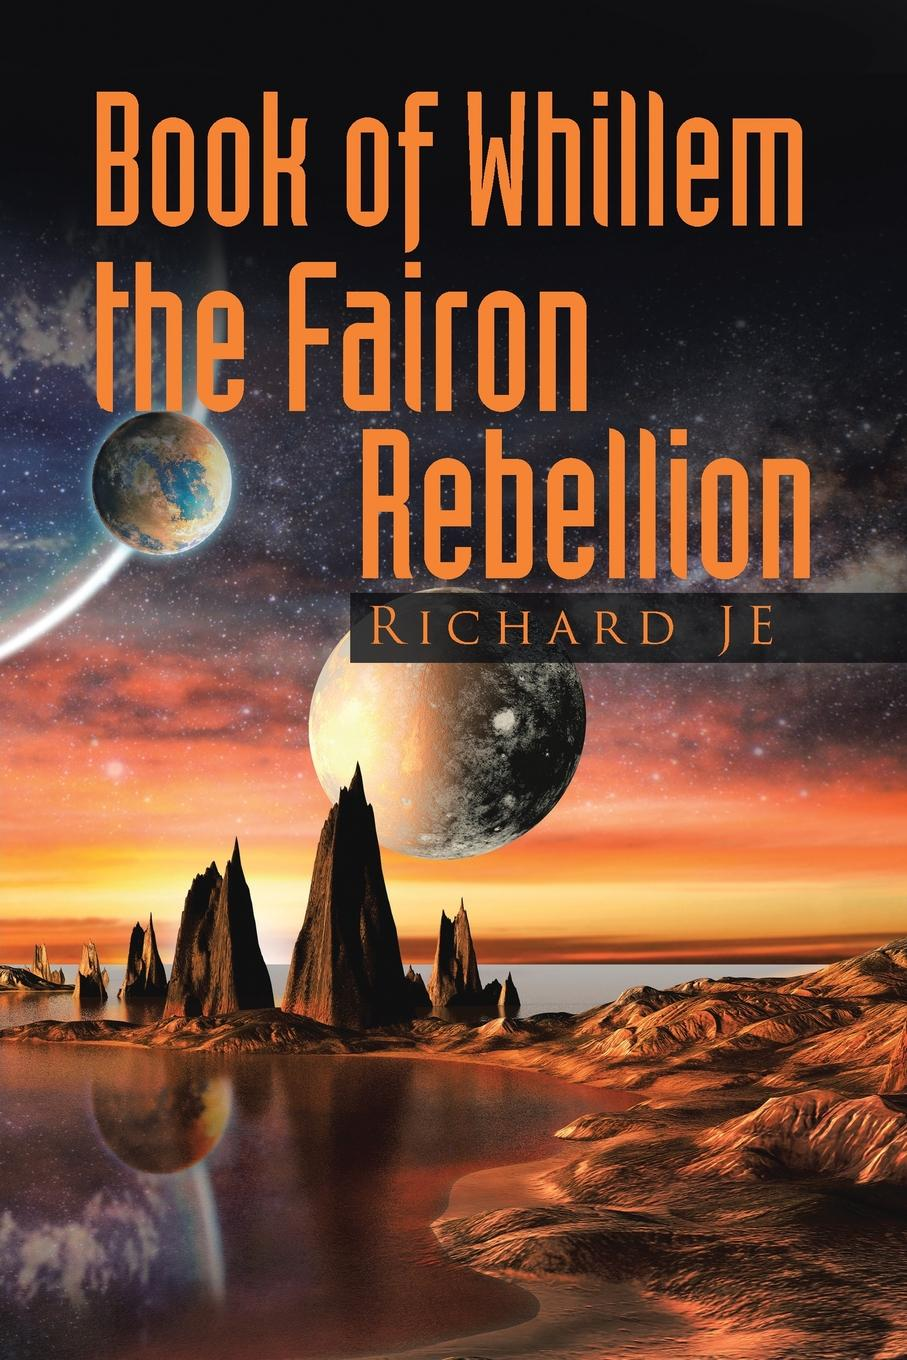 Richard J E Book of Whillem The Fairon Rebellion nanna lord mallam the politics of the united nations security council reform